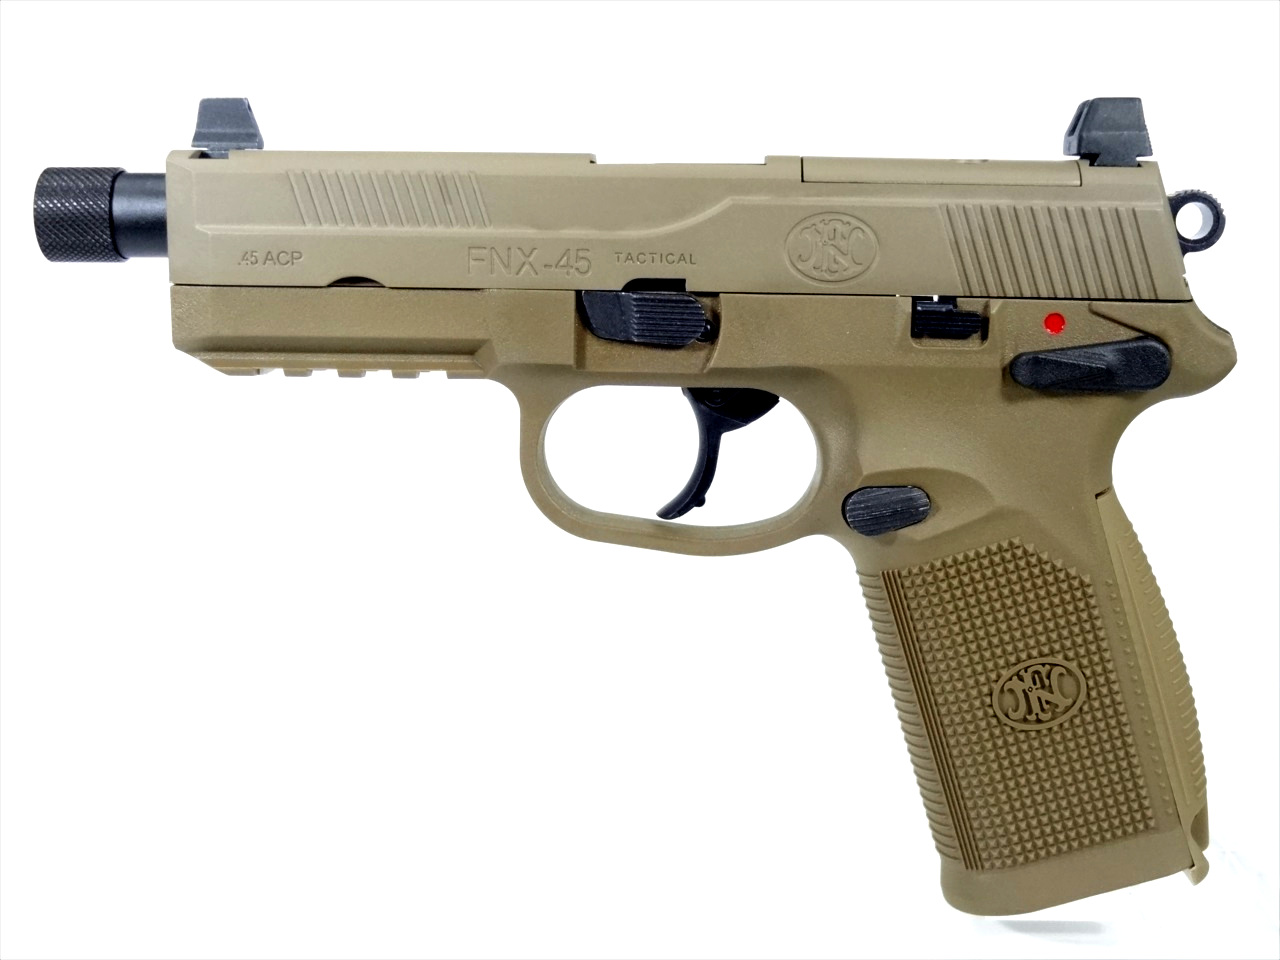 CyberGun FNX-45 Tactical ガスブローバックピストル (DE)  Cerakote Limited